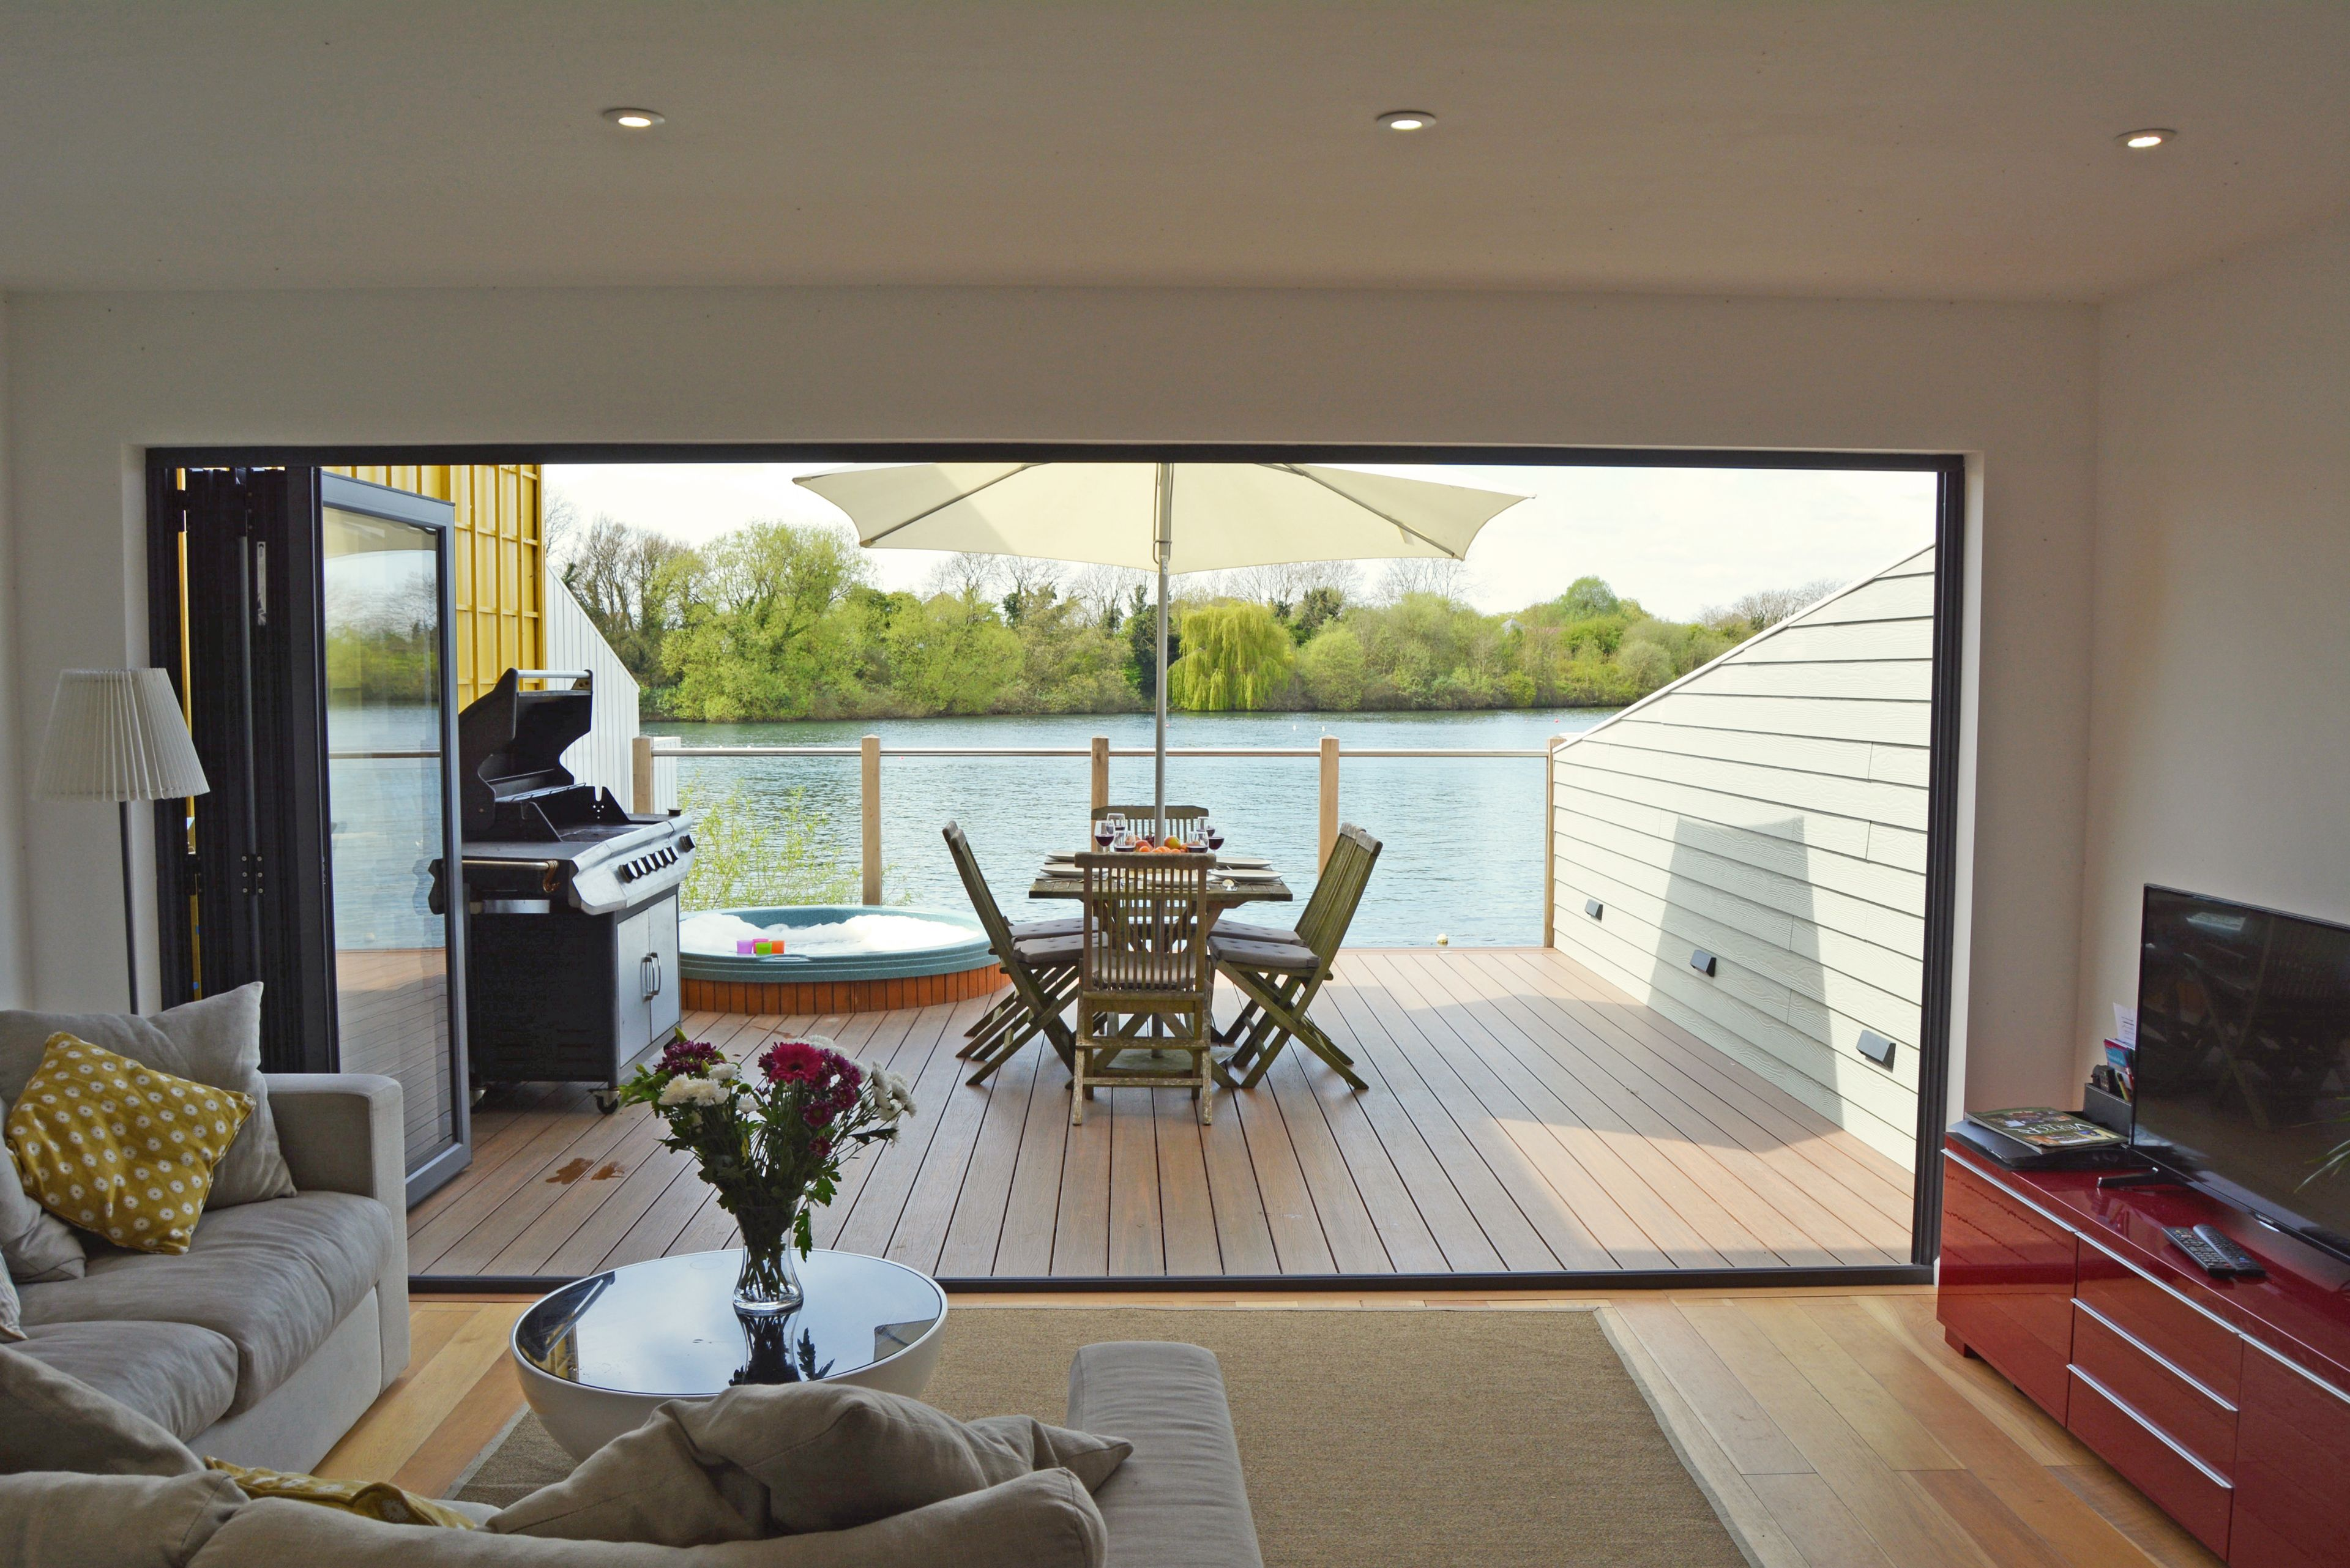 Bifold doors ensure the house is filled with calm and tranquil light